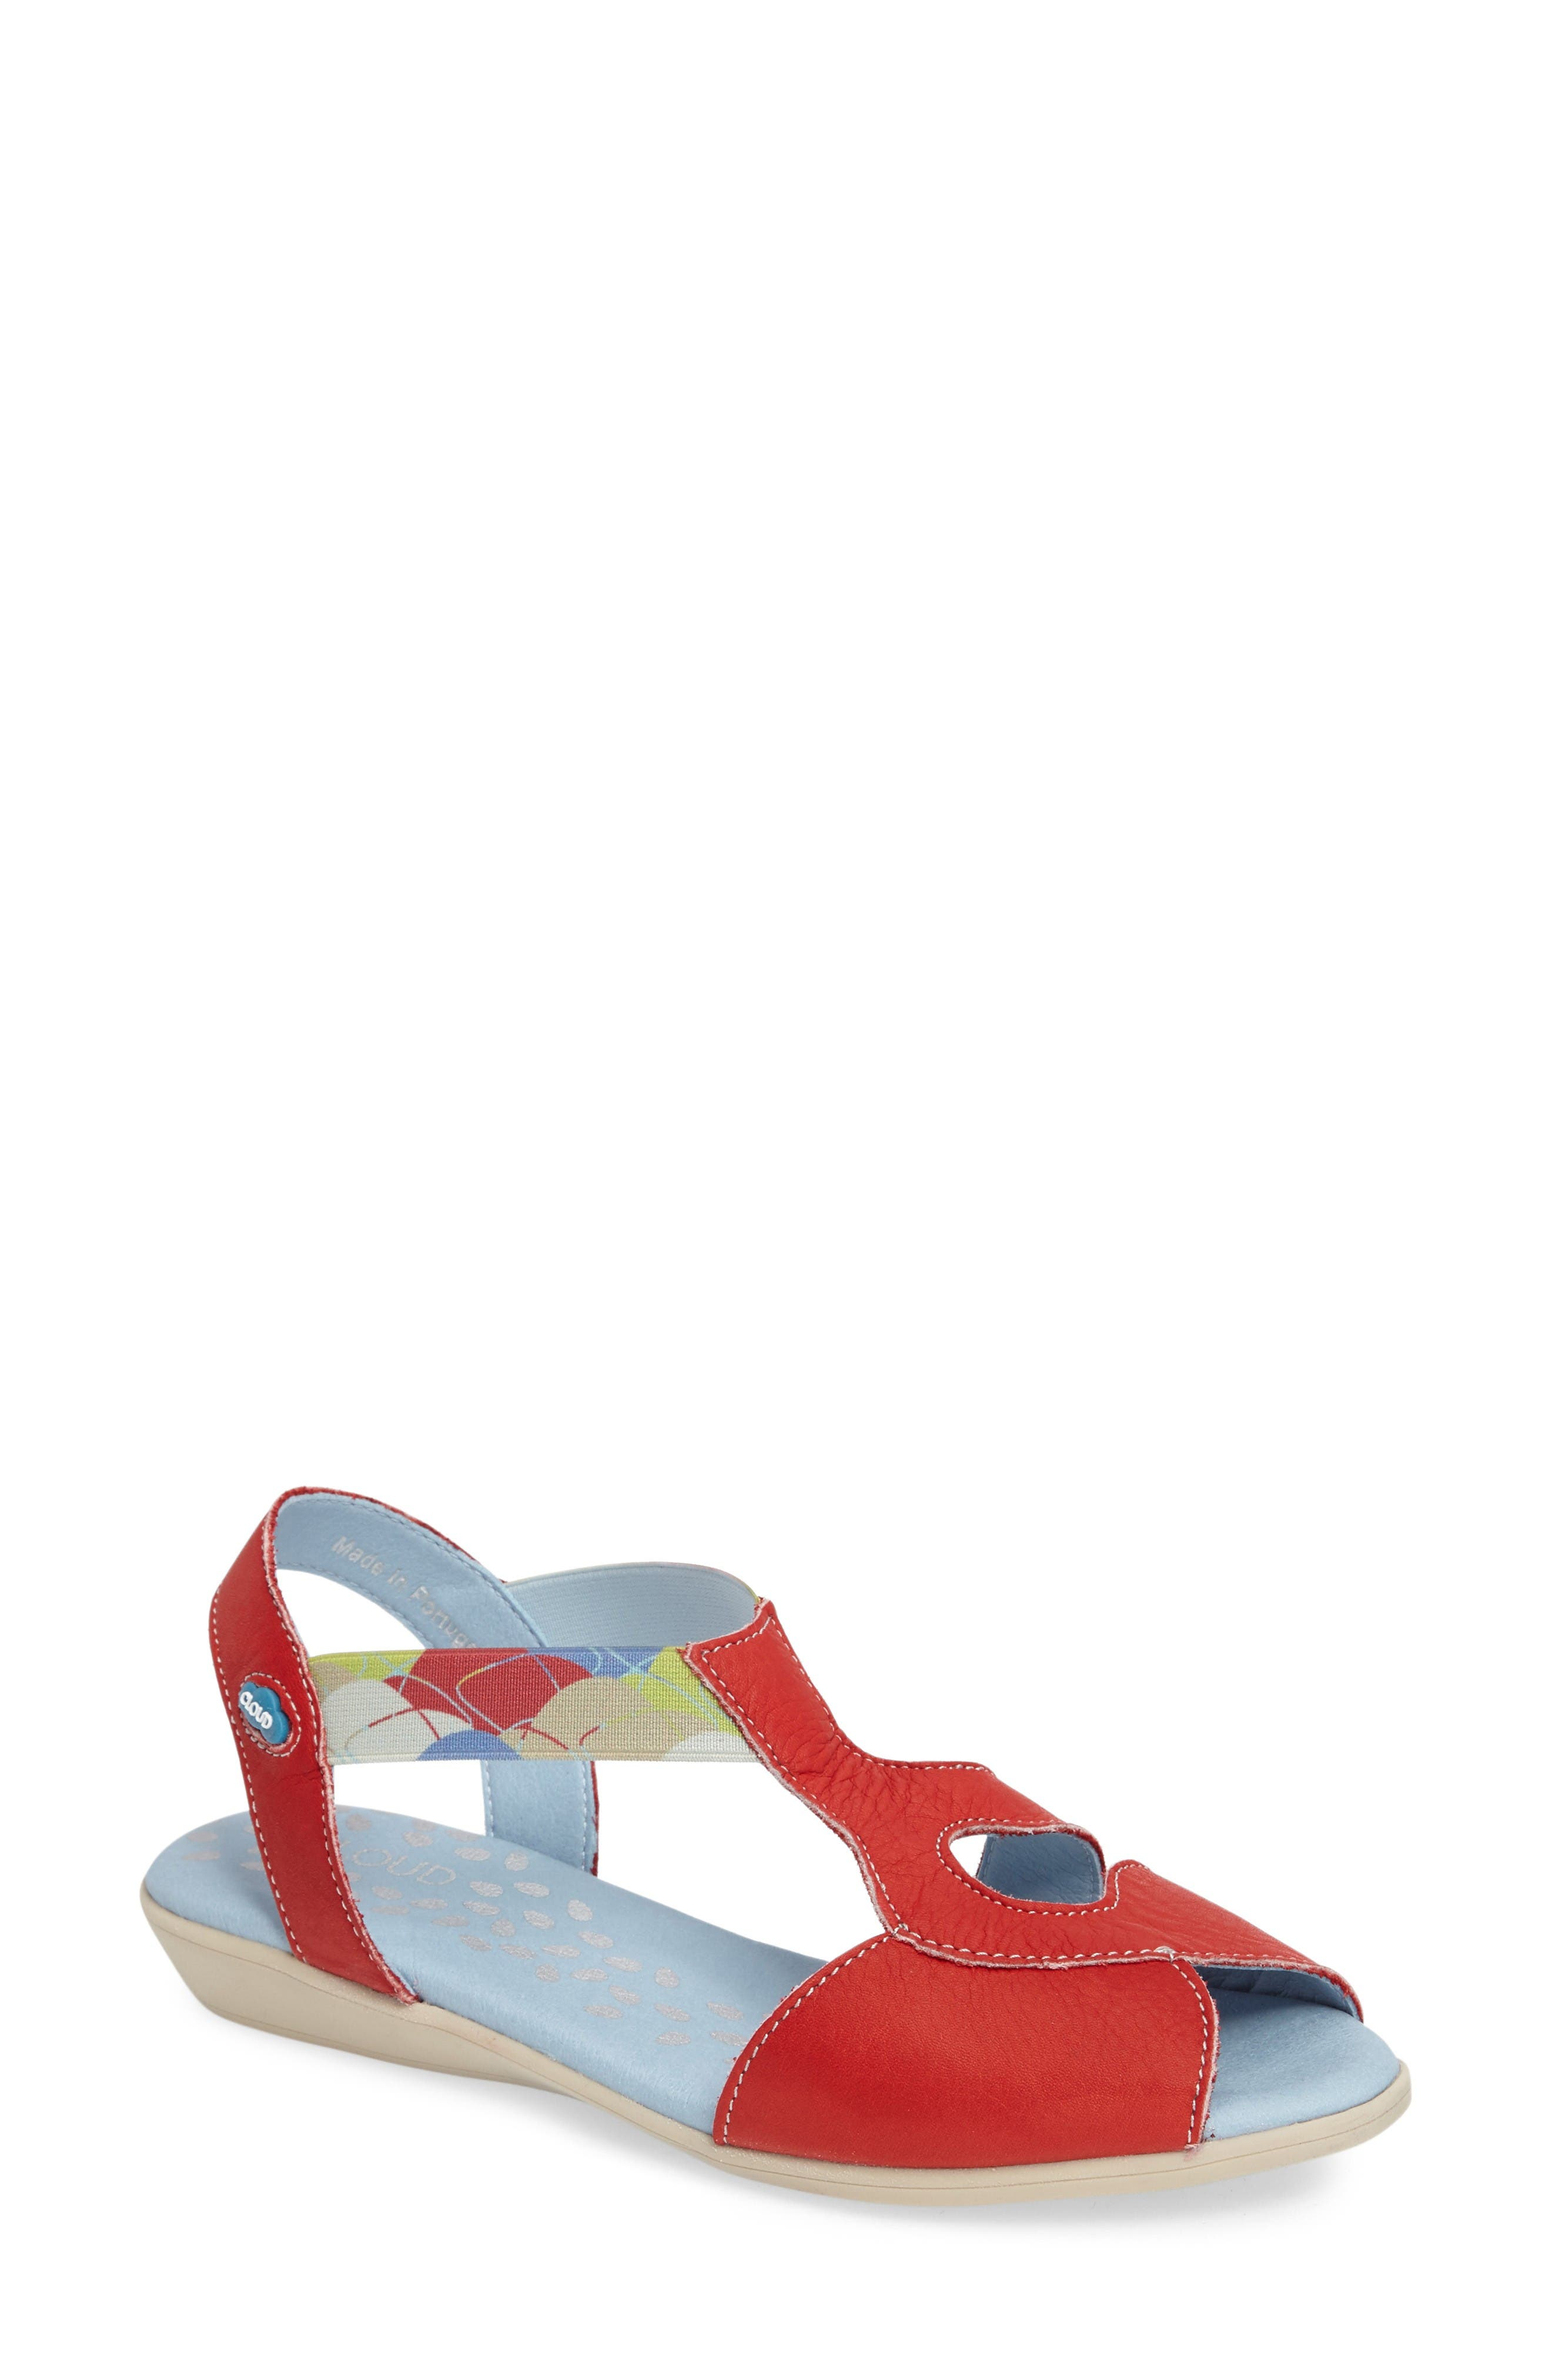 CLOUD Chaya Sandal (Women)